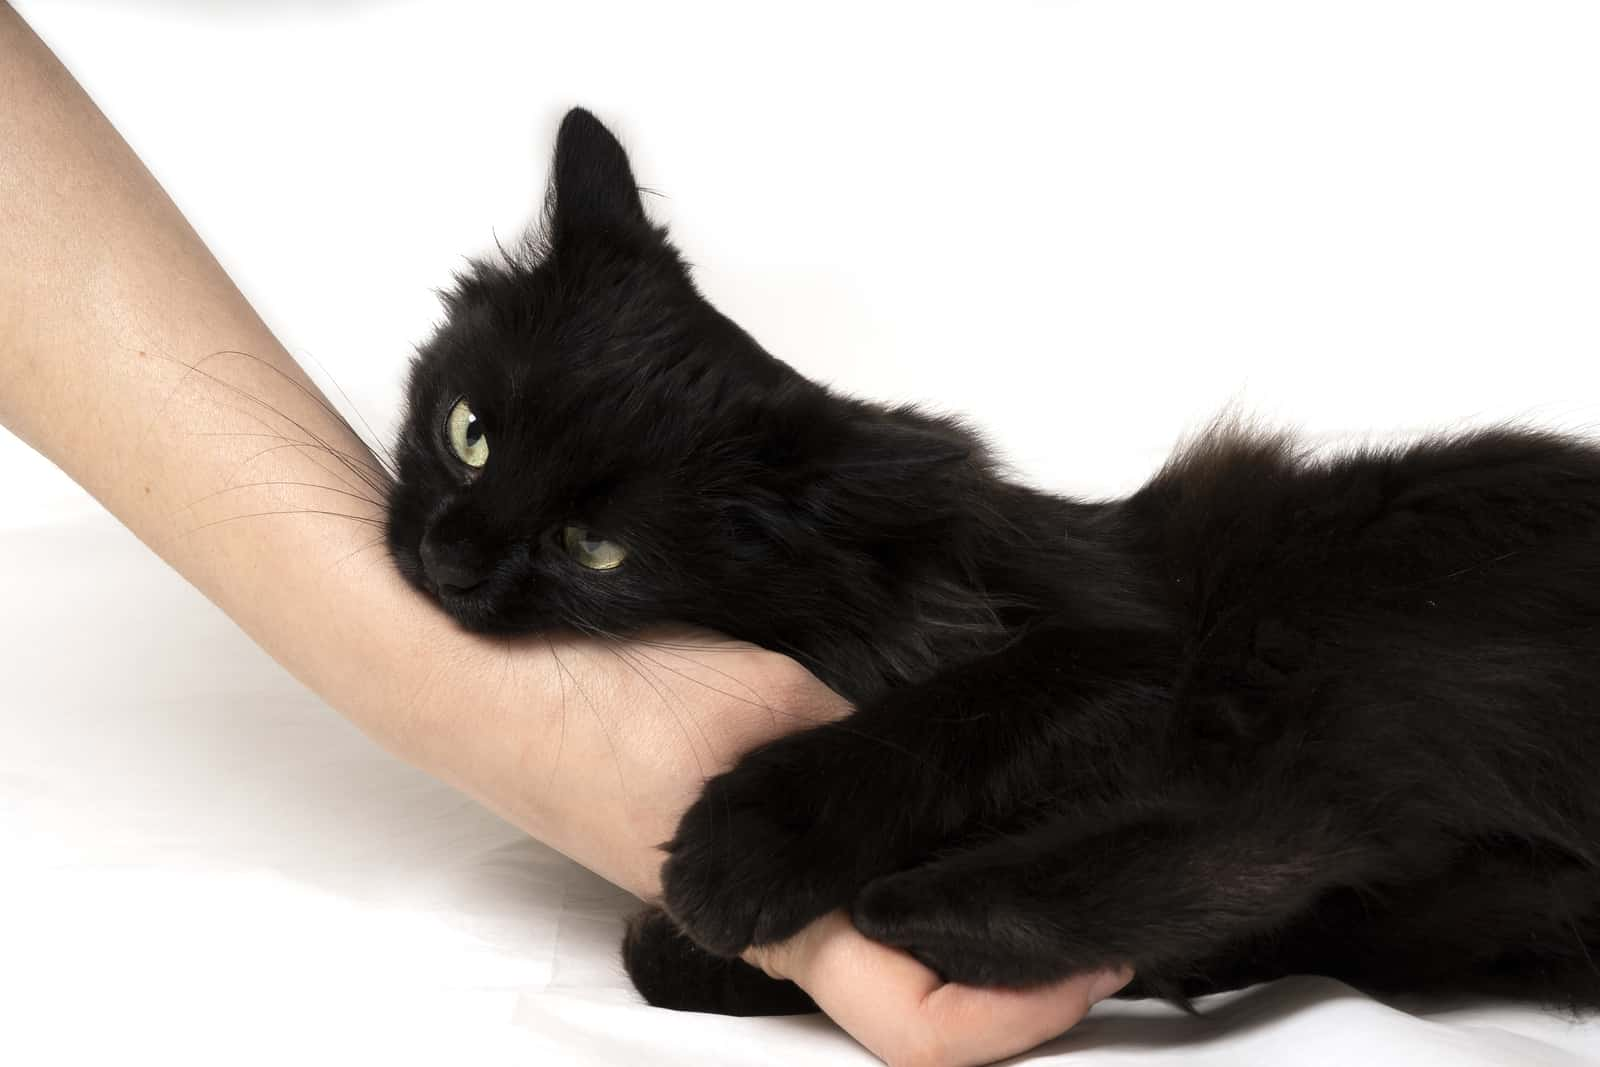 why does my cat bite me when I pet them?